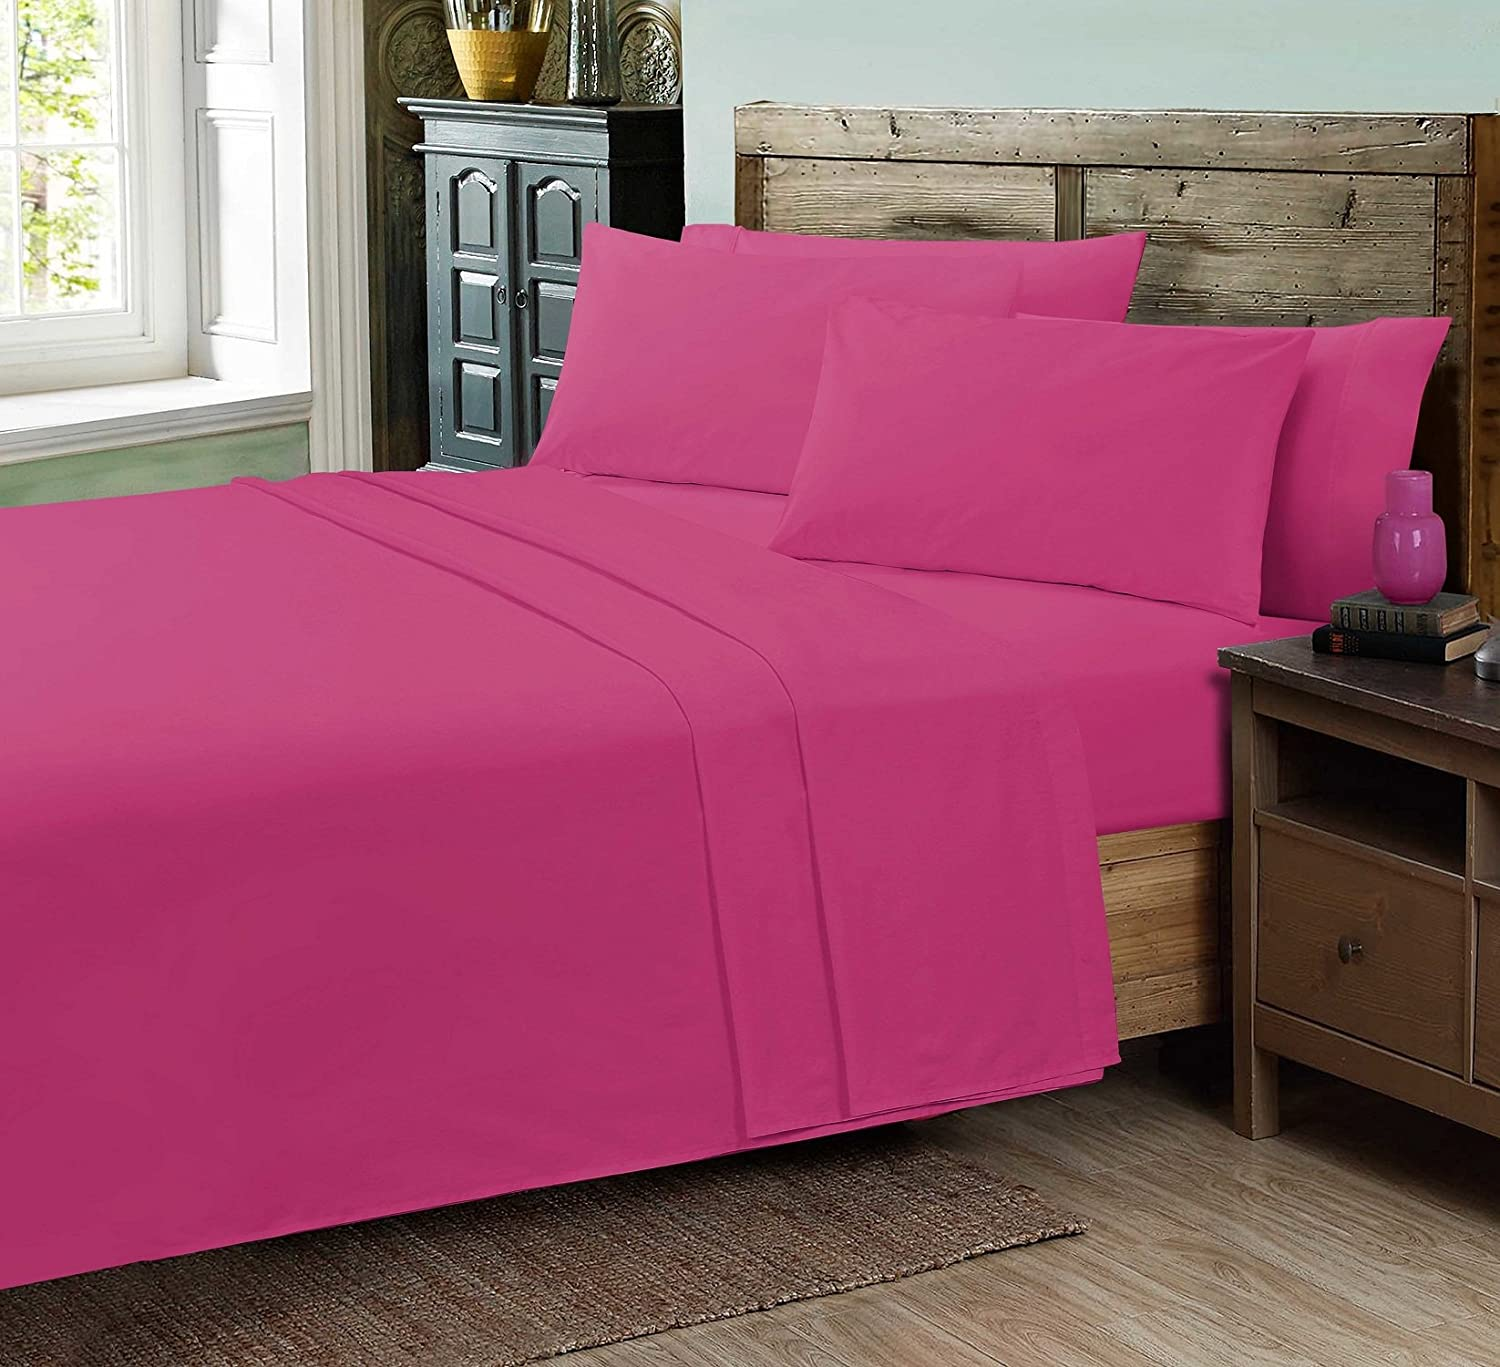 Decent Plain Dyed Flat Bed Sheets White DOUBLE Flat Sheet Poly Cotton Fabric with Optional Pillow Cases And V-Cases 12 Colors UK Sizes